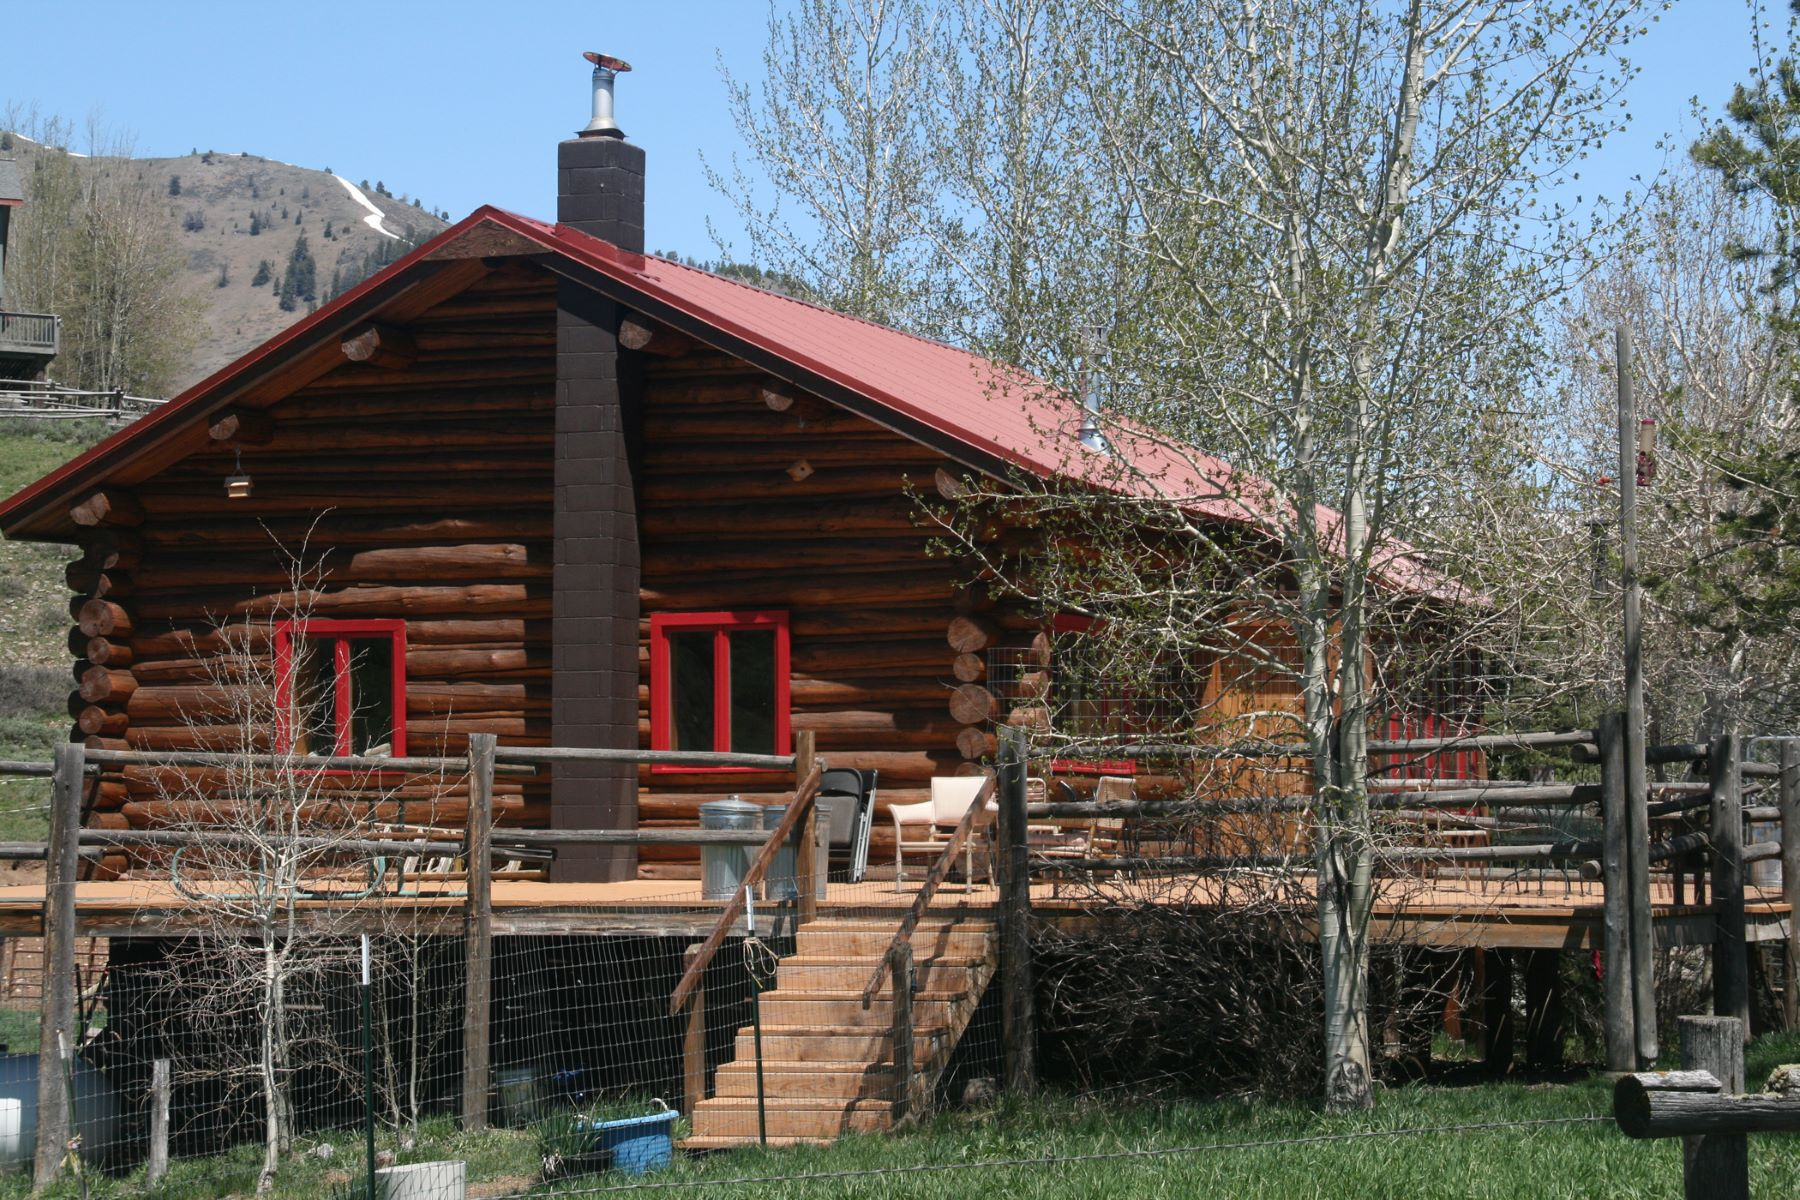 Single Family Home for Sale at Game Creek Log Home 6825 S SQUAW CREEK ROAD, Jackson, Wyoming, 83001 Jackson Hole, United States